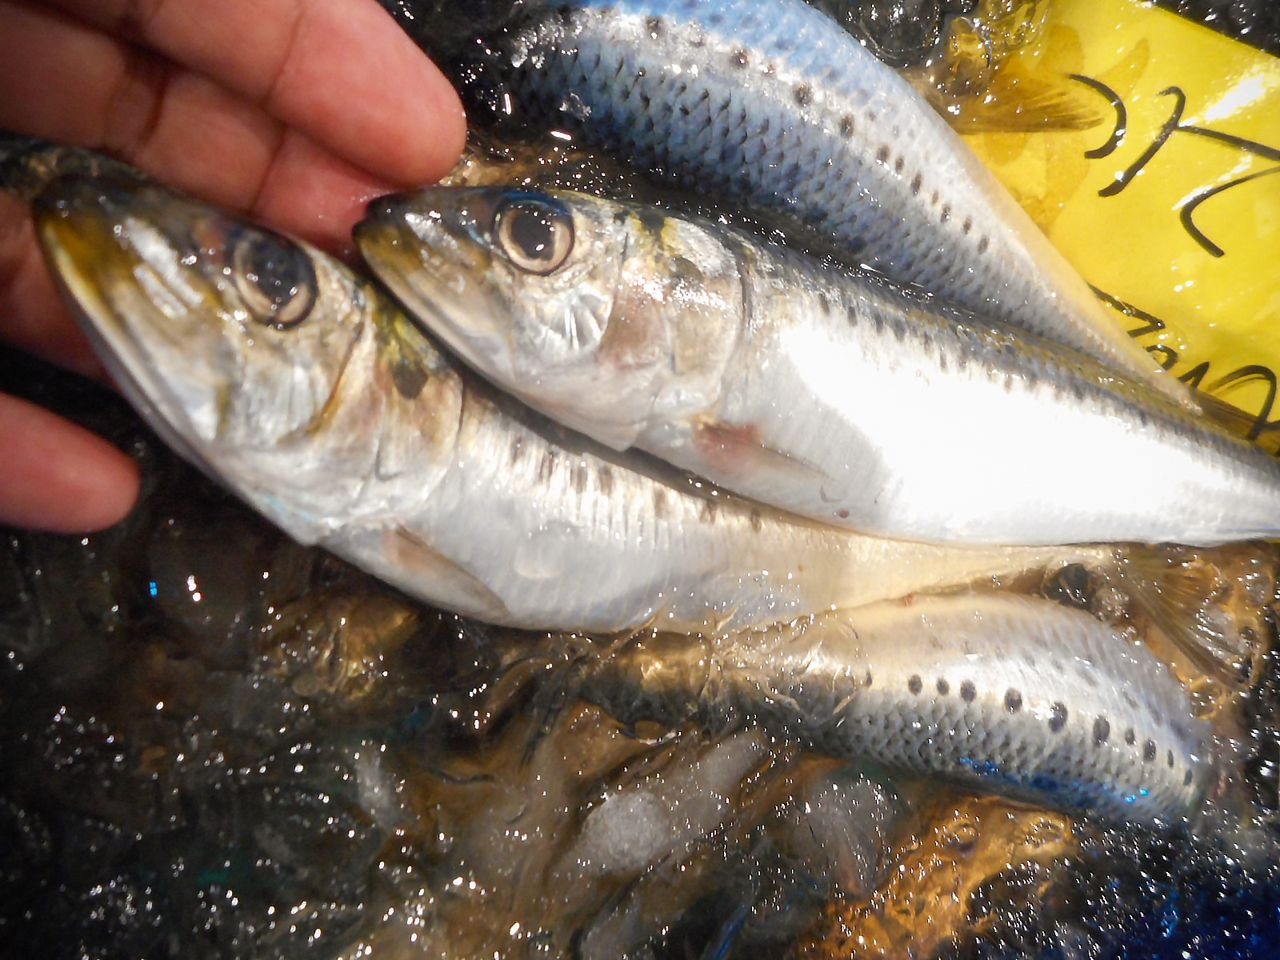 Sardines have gained popularity among consumers for their freshness and quality. (© Kawamoto Daigo)